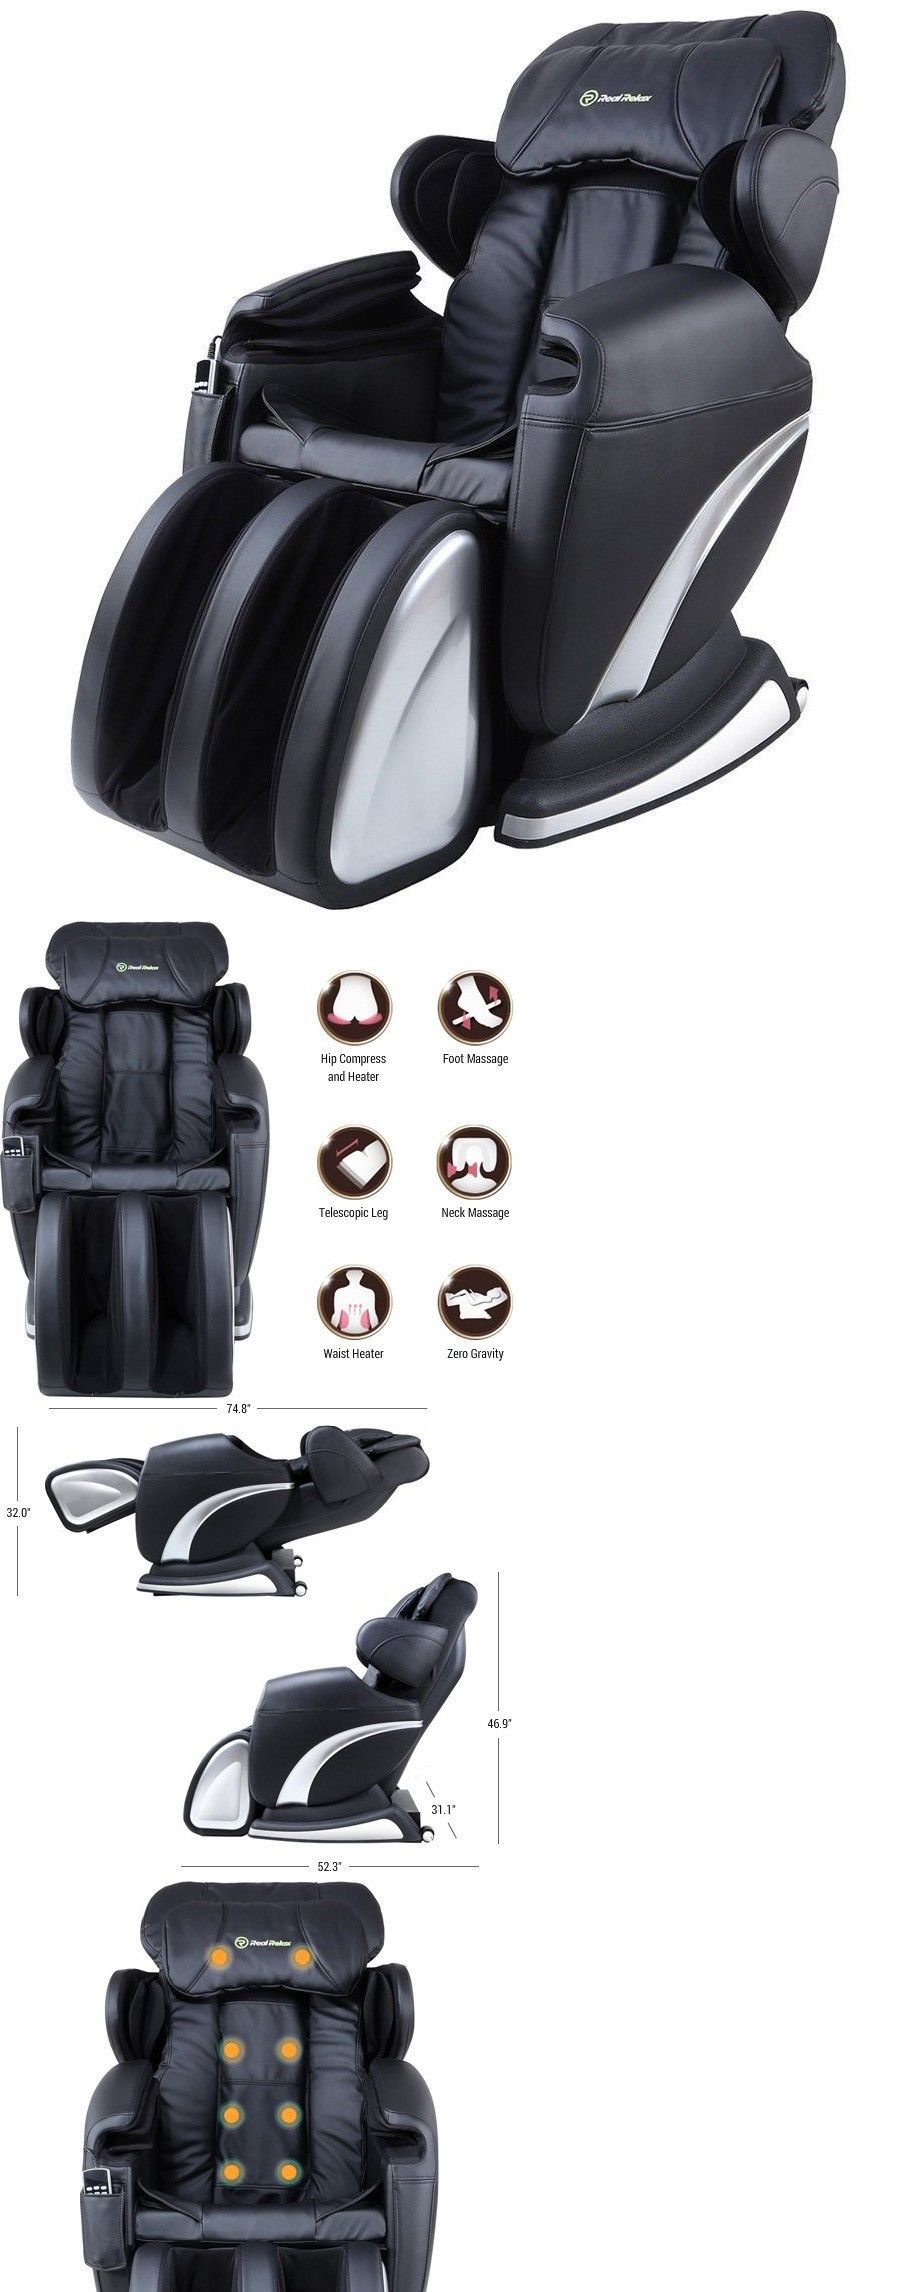 Electric Massage Chairs Deal Full Body Massage Chair 3Yr Warranty